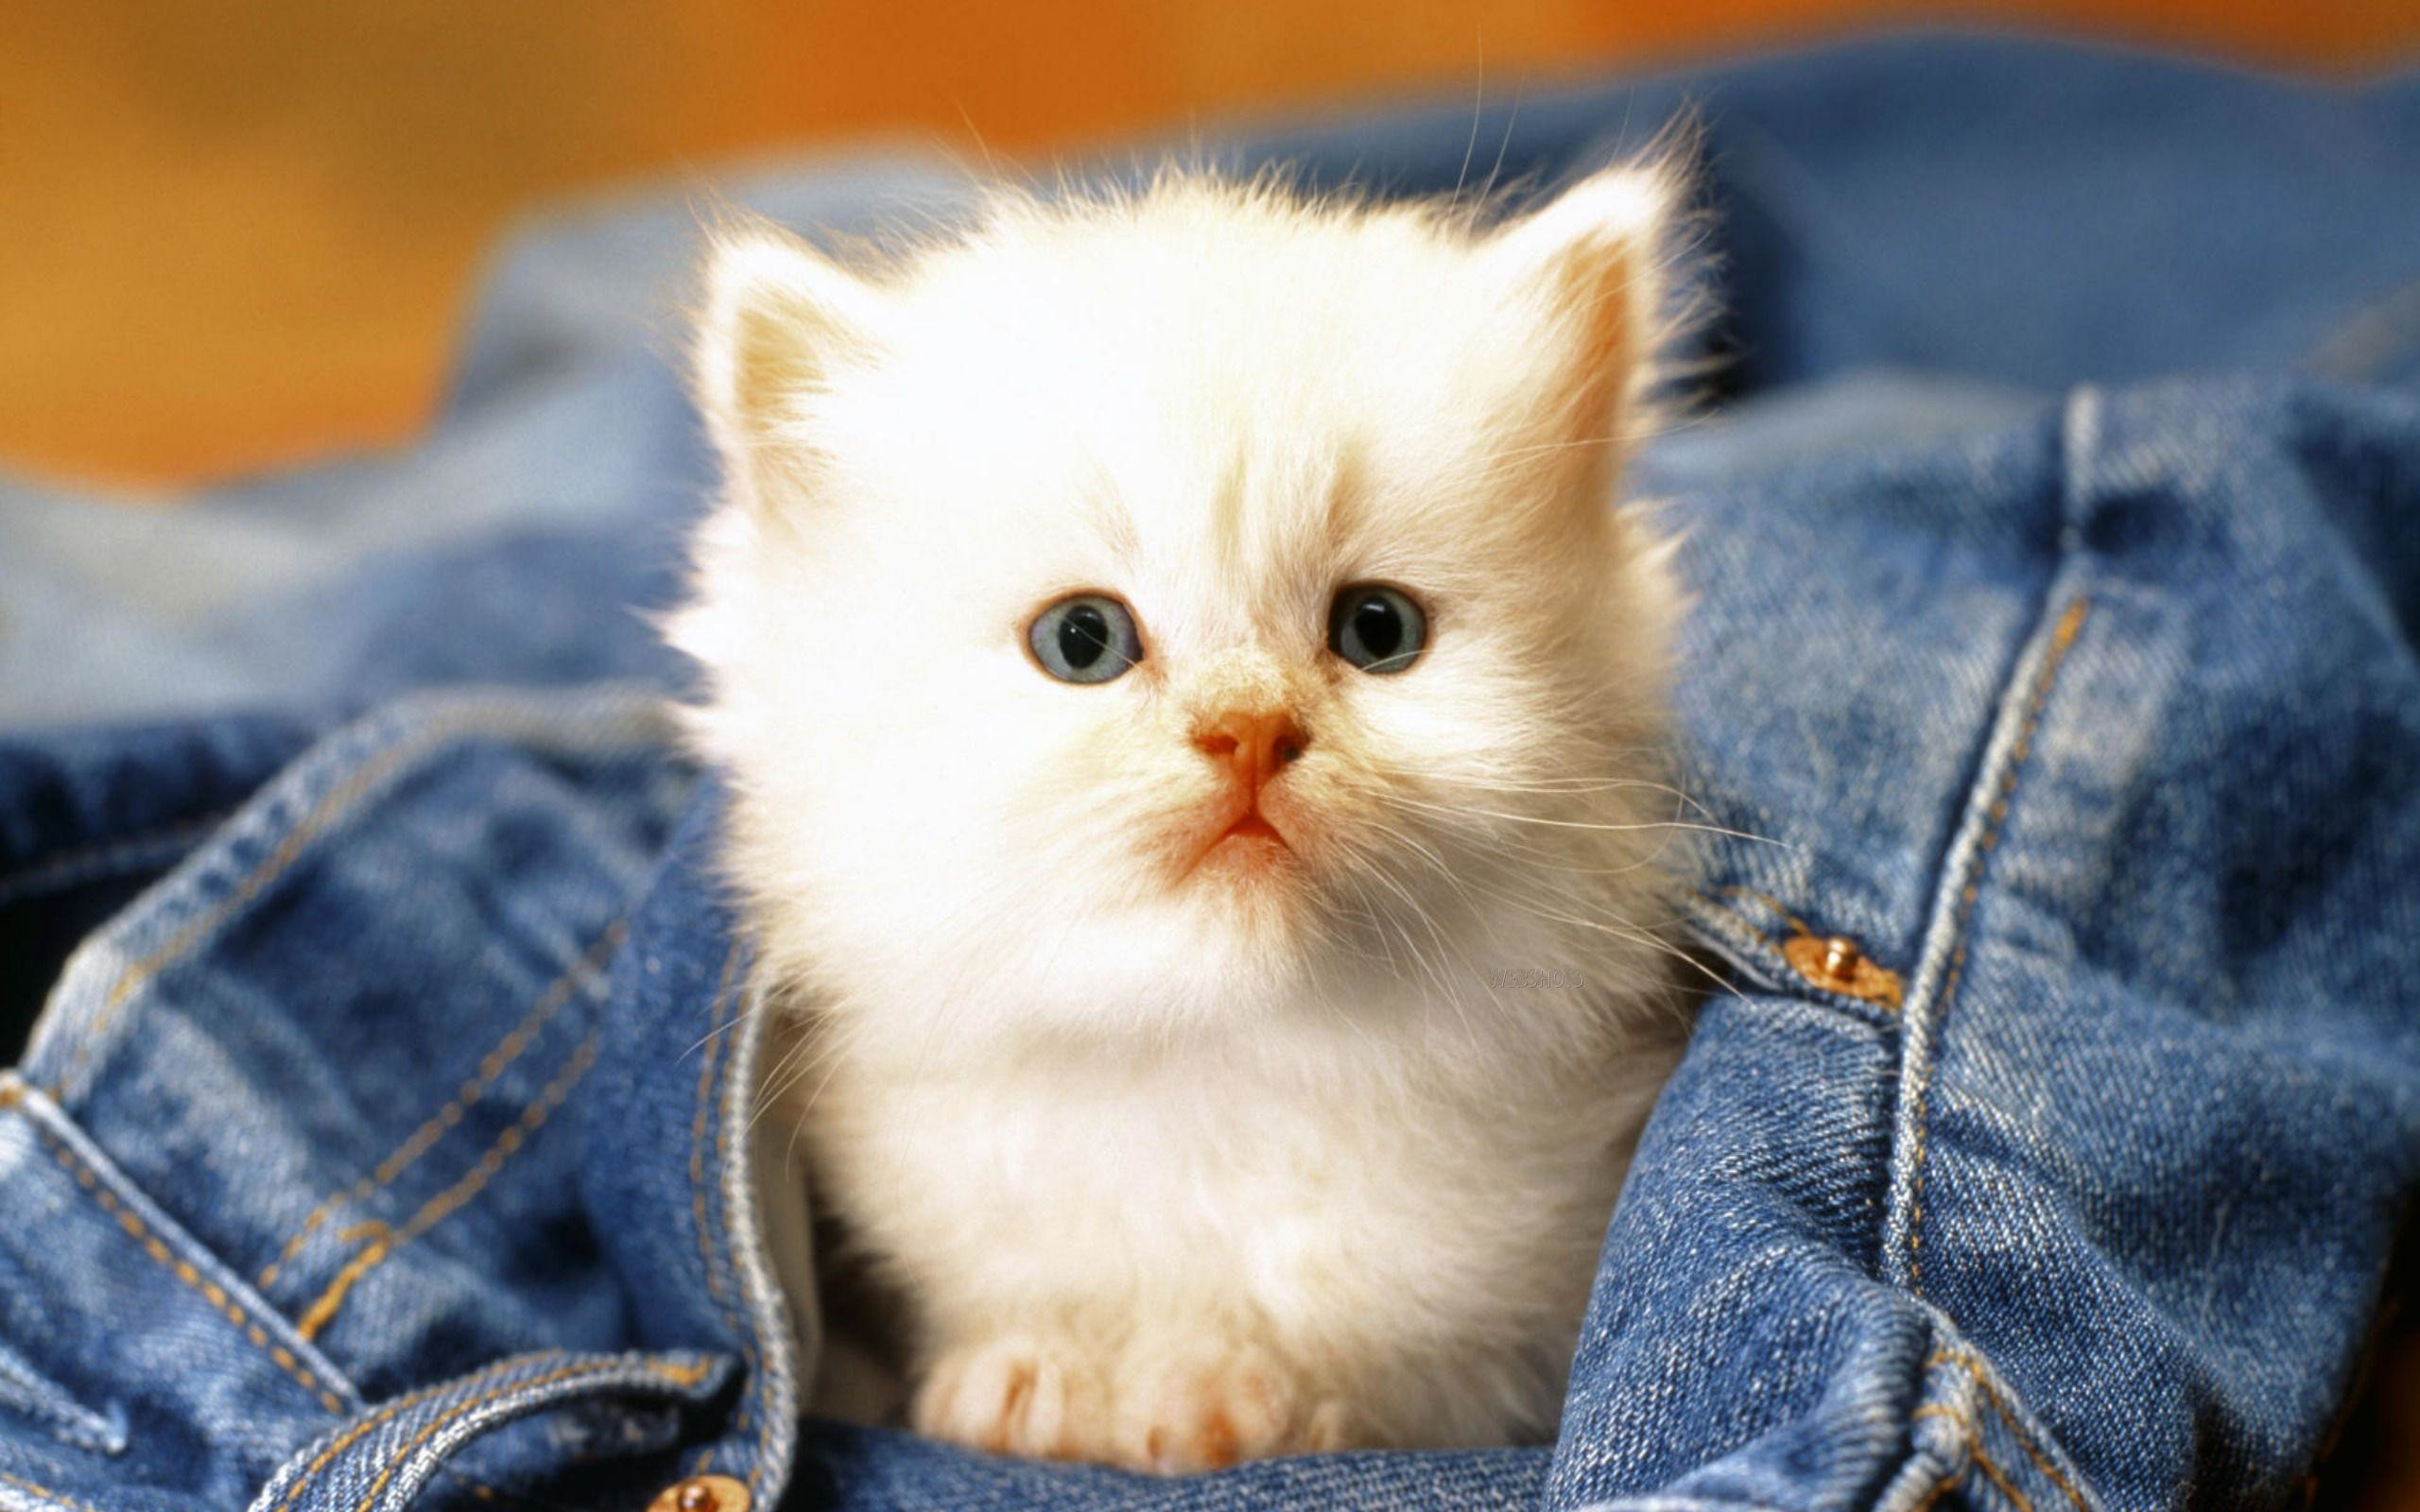 Res: 2560x1600, Cute Cat Wallpapers 21829 Hd Wallpapers in Cute - Telusers.com